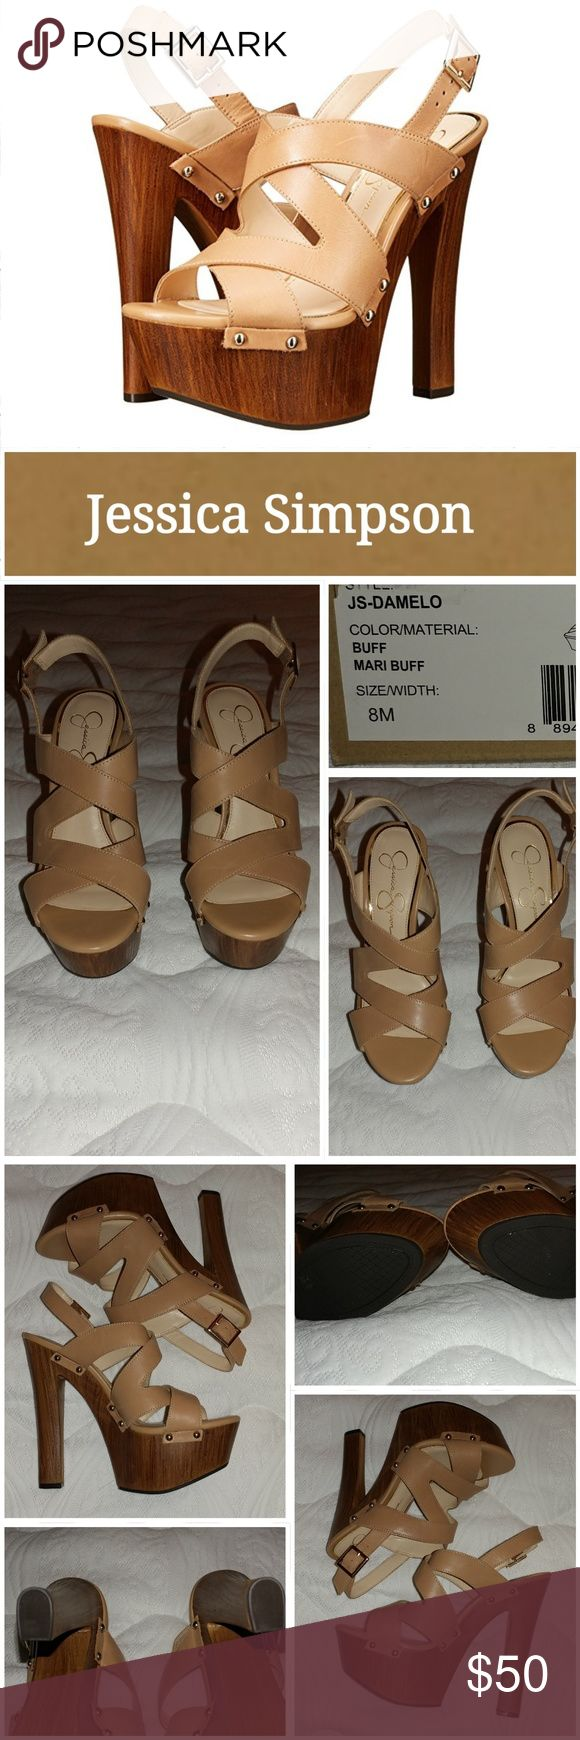 NIB Jessica Simpson Sandals! Get on the 70's inspired fashion train in the Damelo. This jaw dropping sandal is made with nude thick straps and back adjusting buckle. Studs connect the upper to the faux wood covered 6 inch block heel and 2 inch platform.  Excellent condition.  Never worn other than to try on in store.  Smoke free home. LOC CL2 Jessica Simpson Shoes Sandals